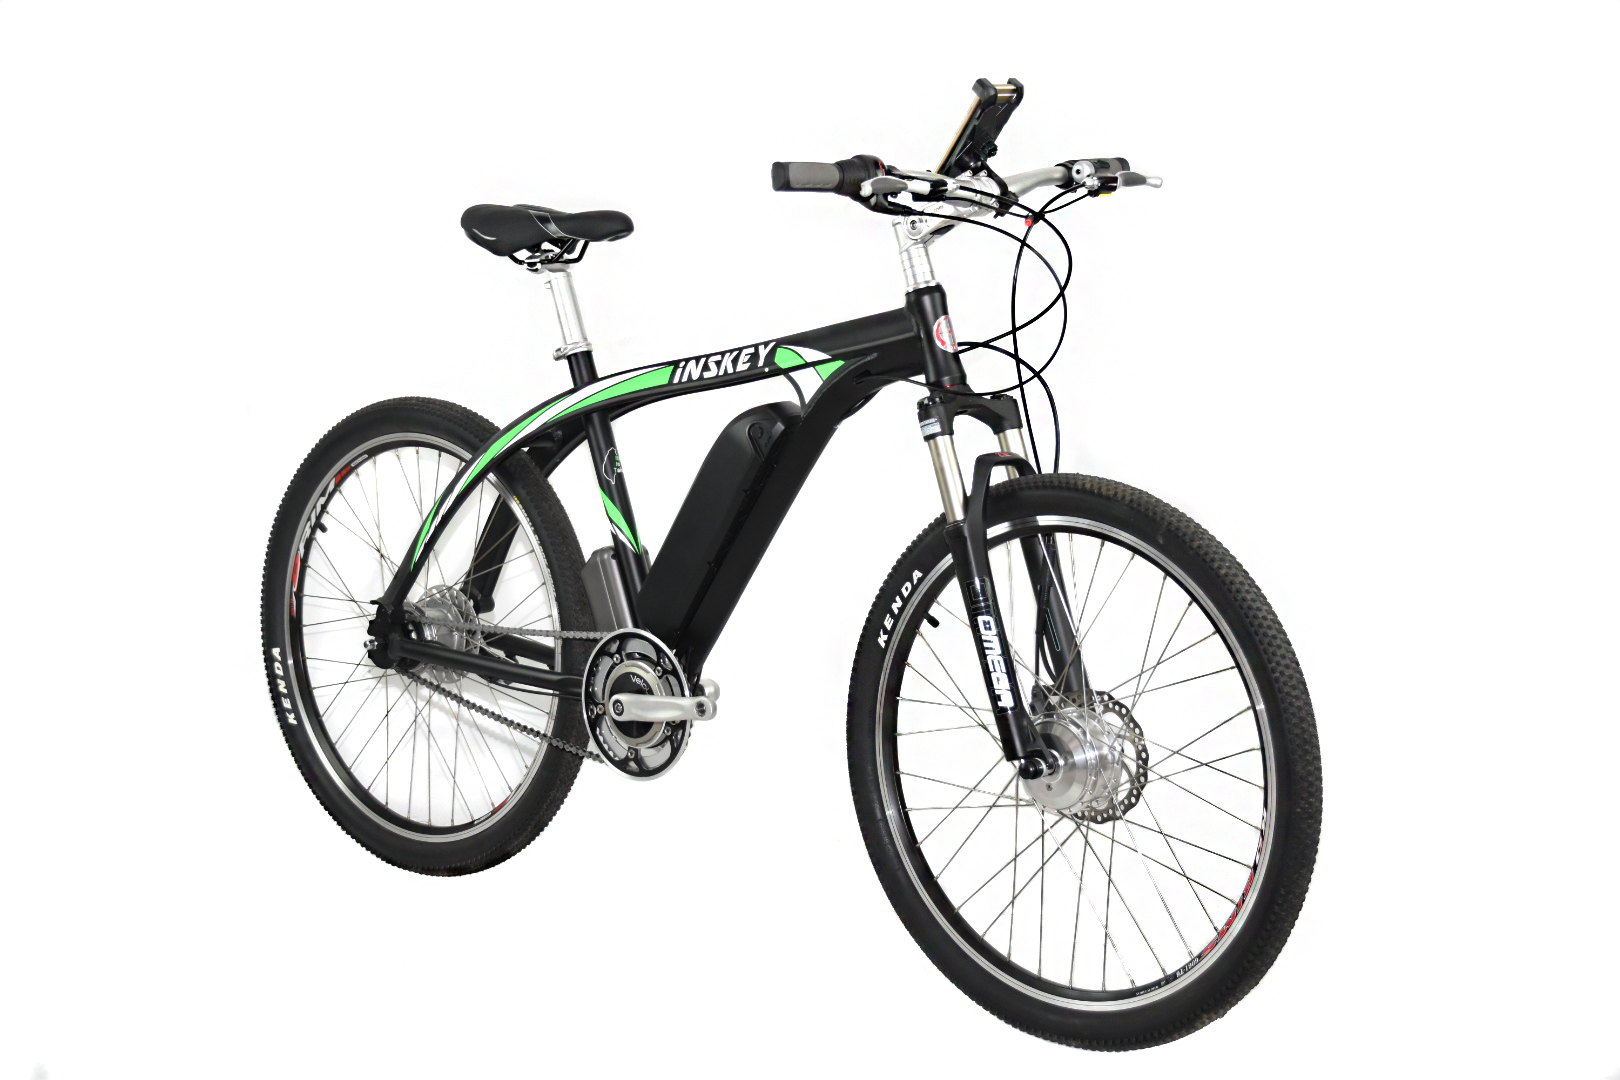 taiwan inskey mountain ebike emb